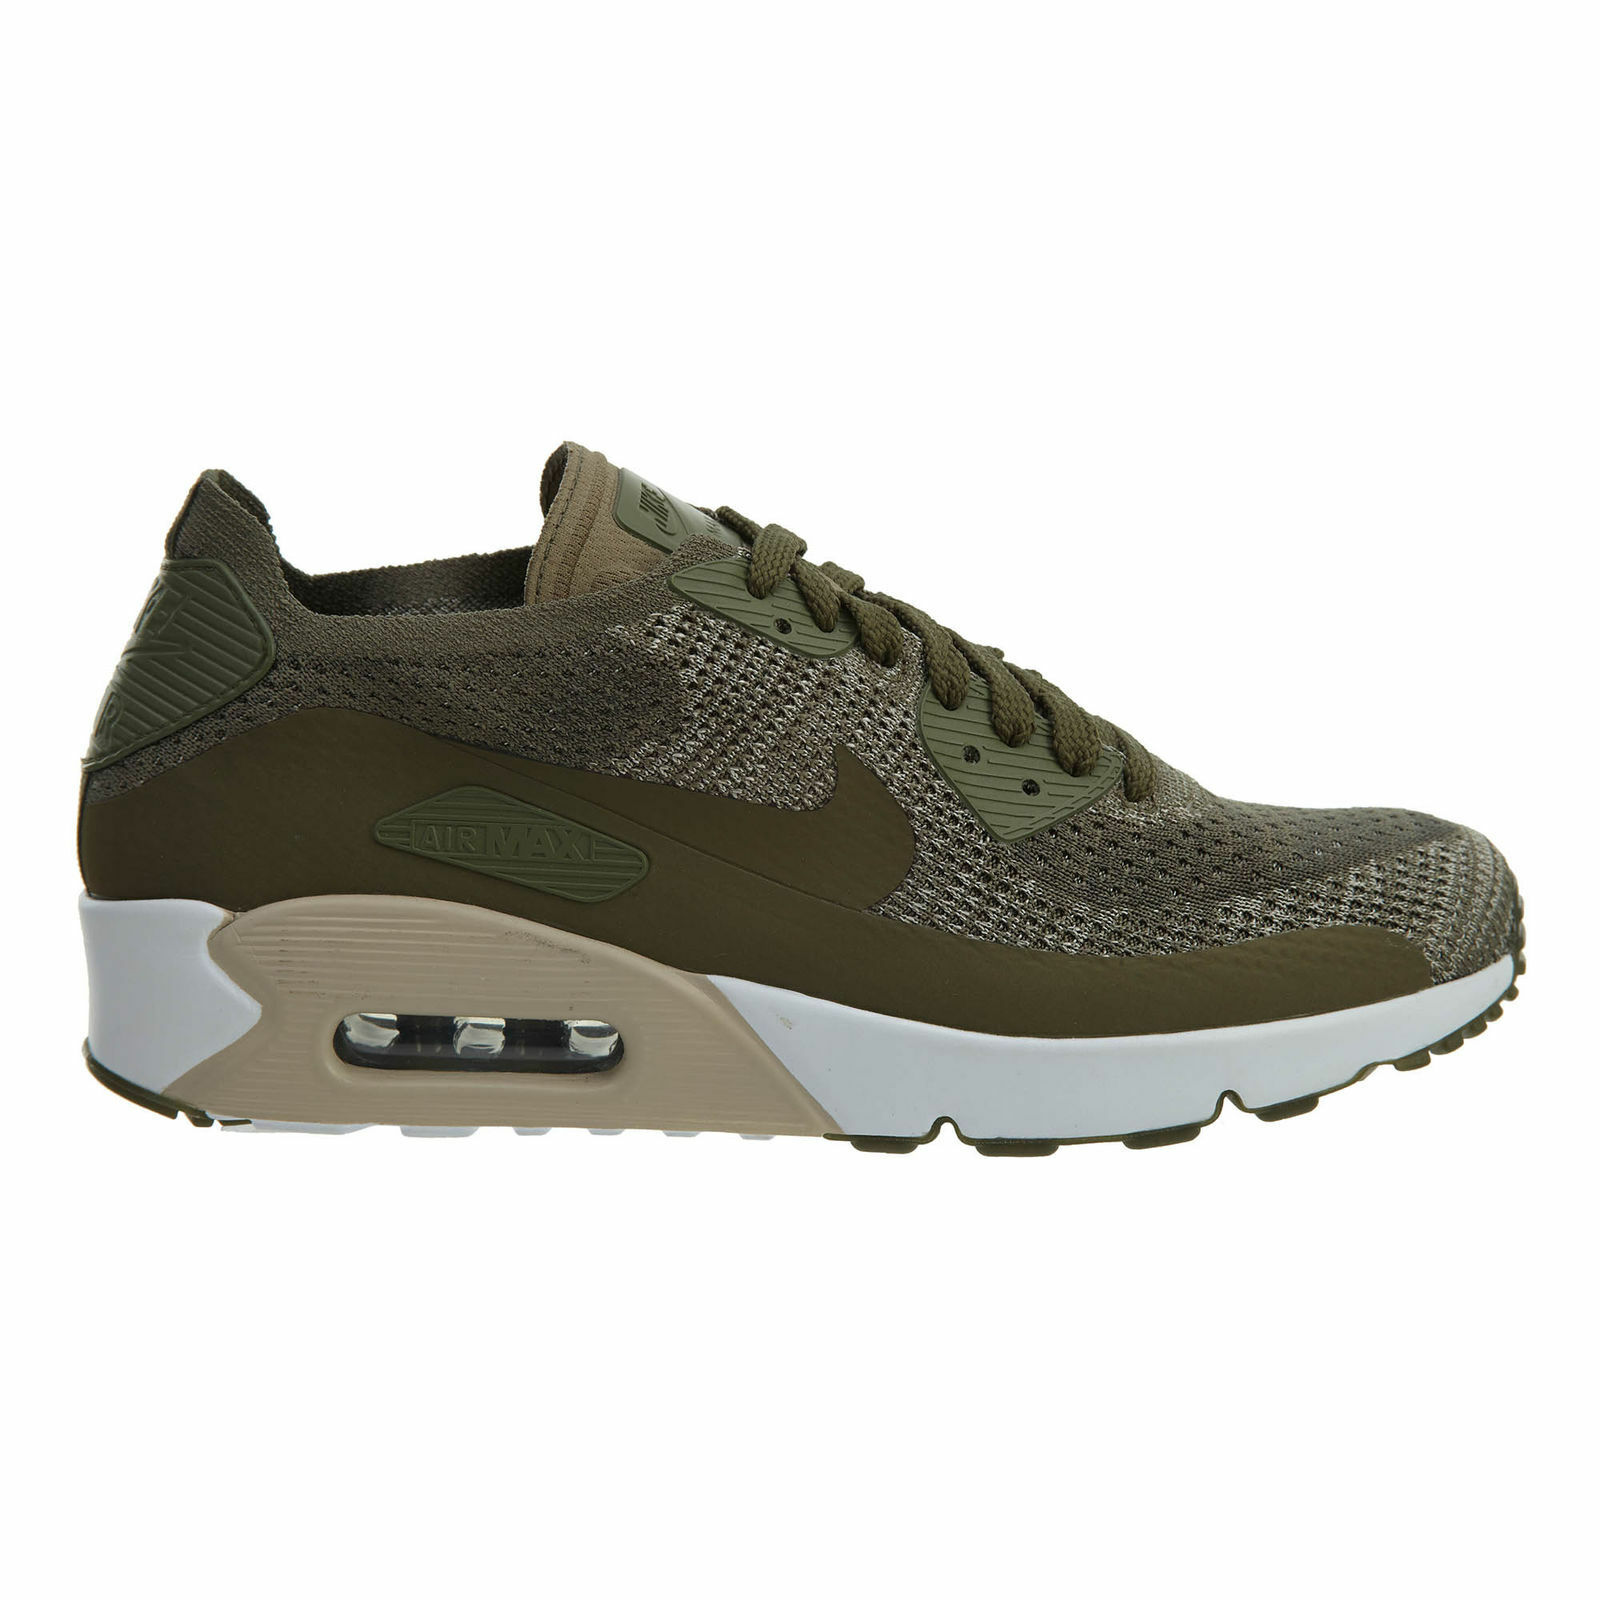 Nike Air Max 90 Ultra 2.0 Flyknit Mens 875943-200 Olive Running shoes Size 10.5